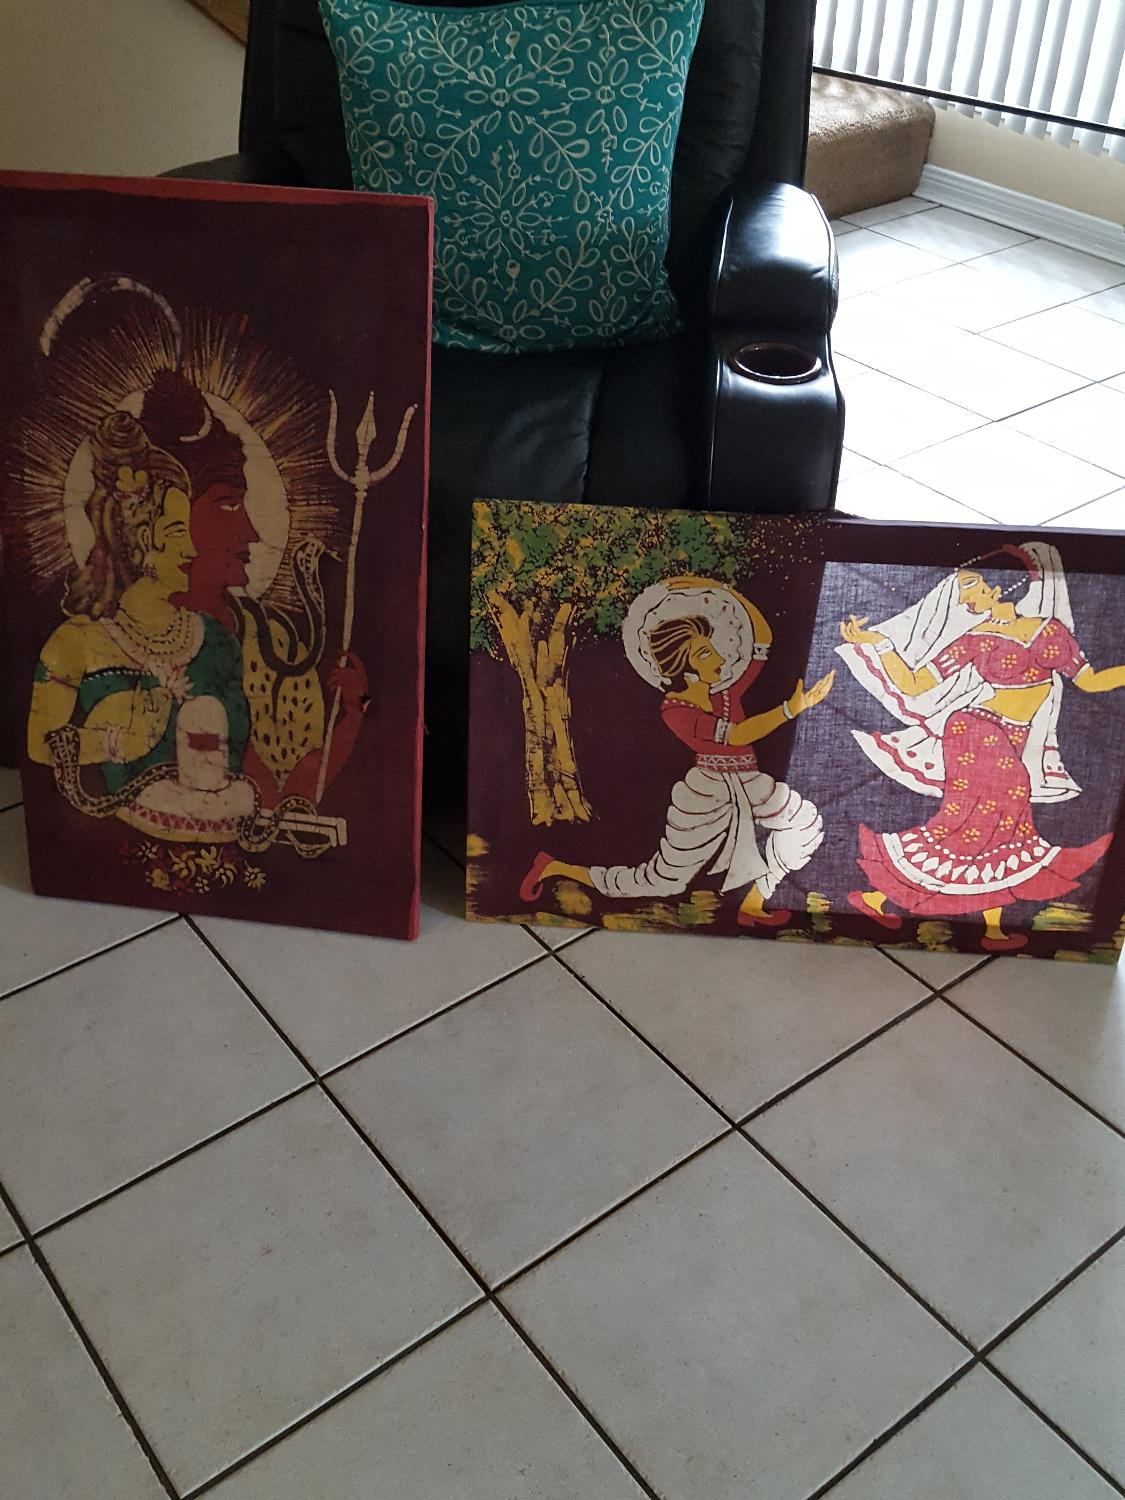 Best 2 Indian Home Decor Canvas For Sale In Friendswood Texas For 2017